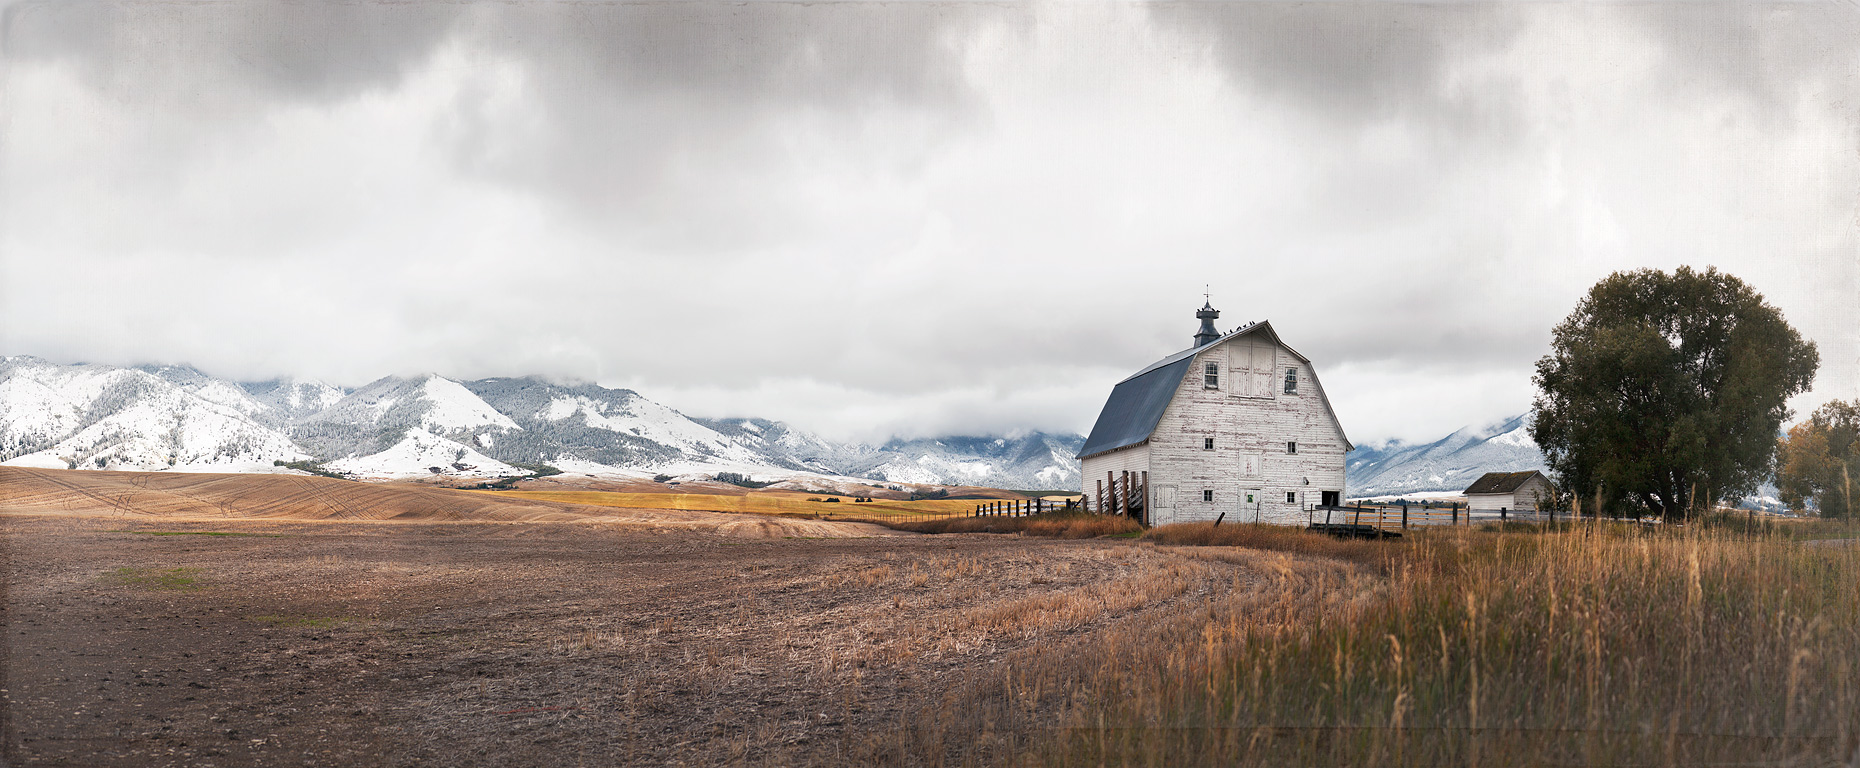 A Gallatin Valley Barn